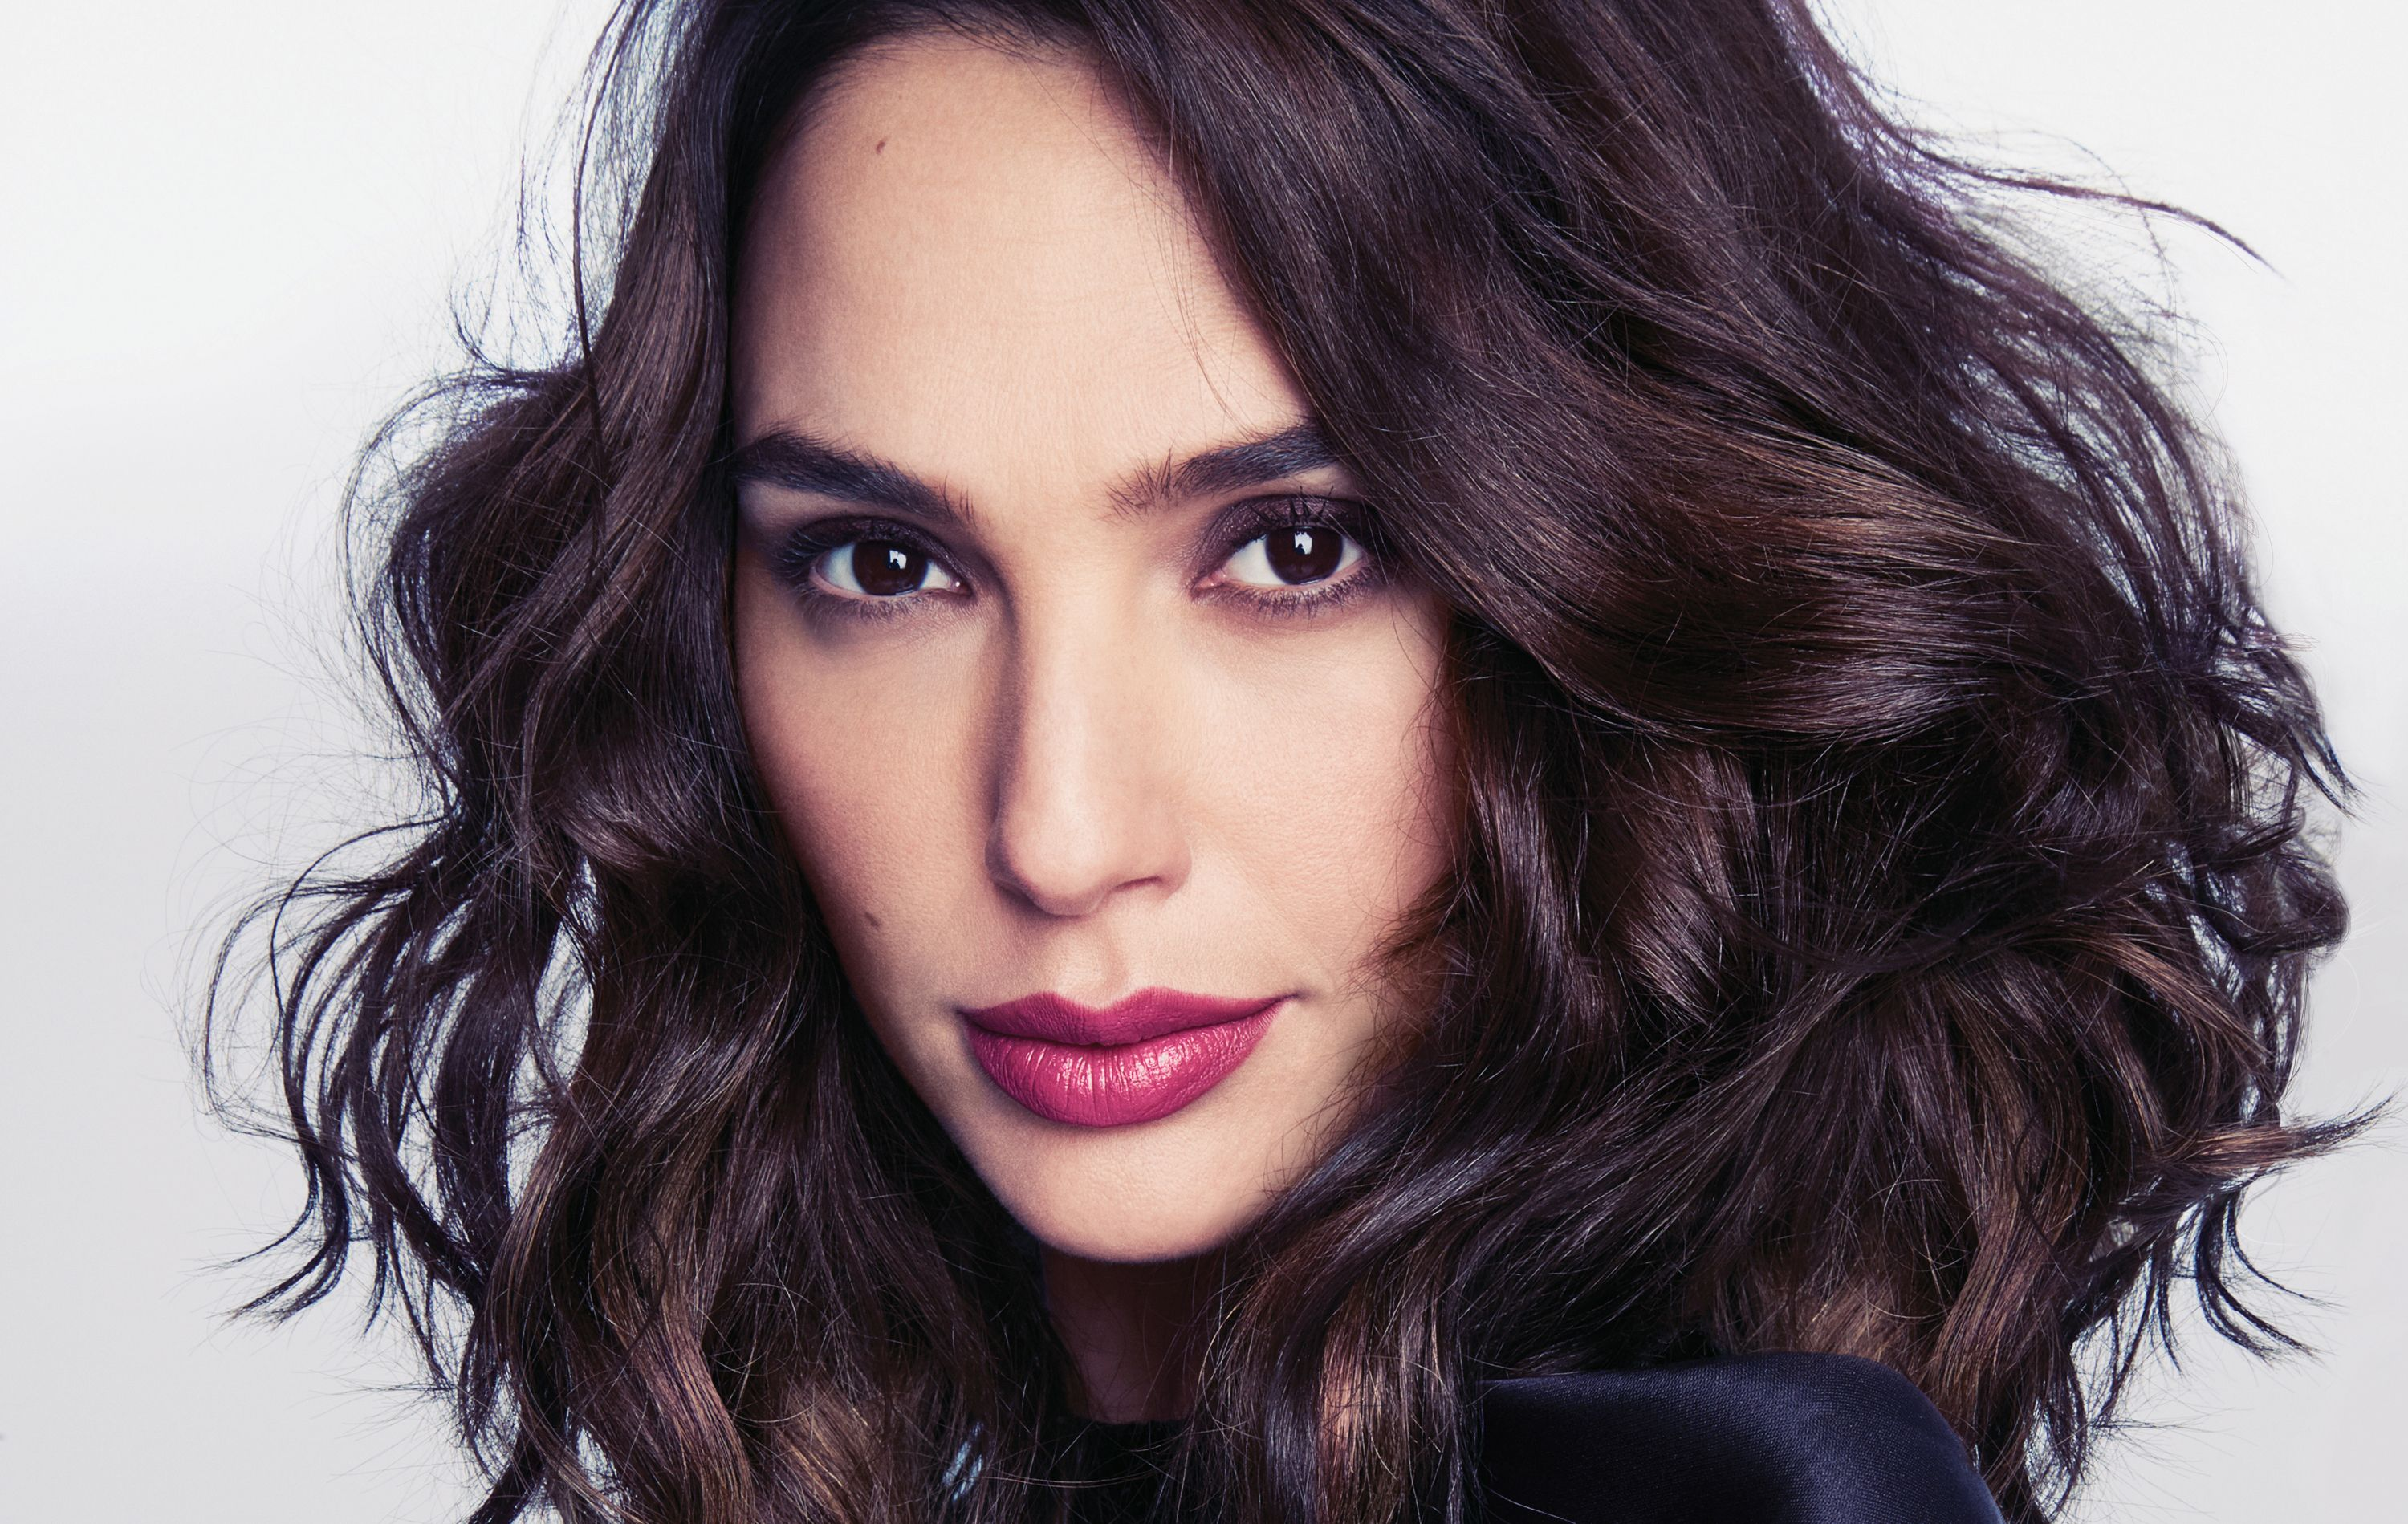 Gal Gadot On Playing Wonder Woman Adversity And Equal Rights Marie Claire June 2017 Cover Photos